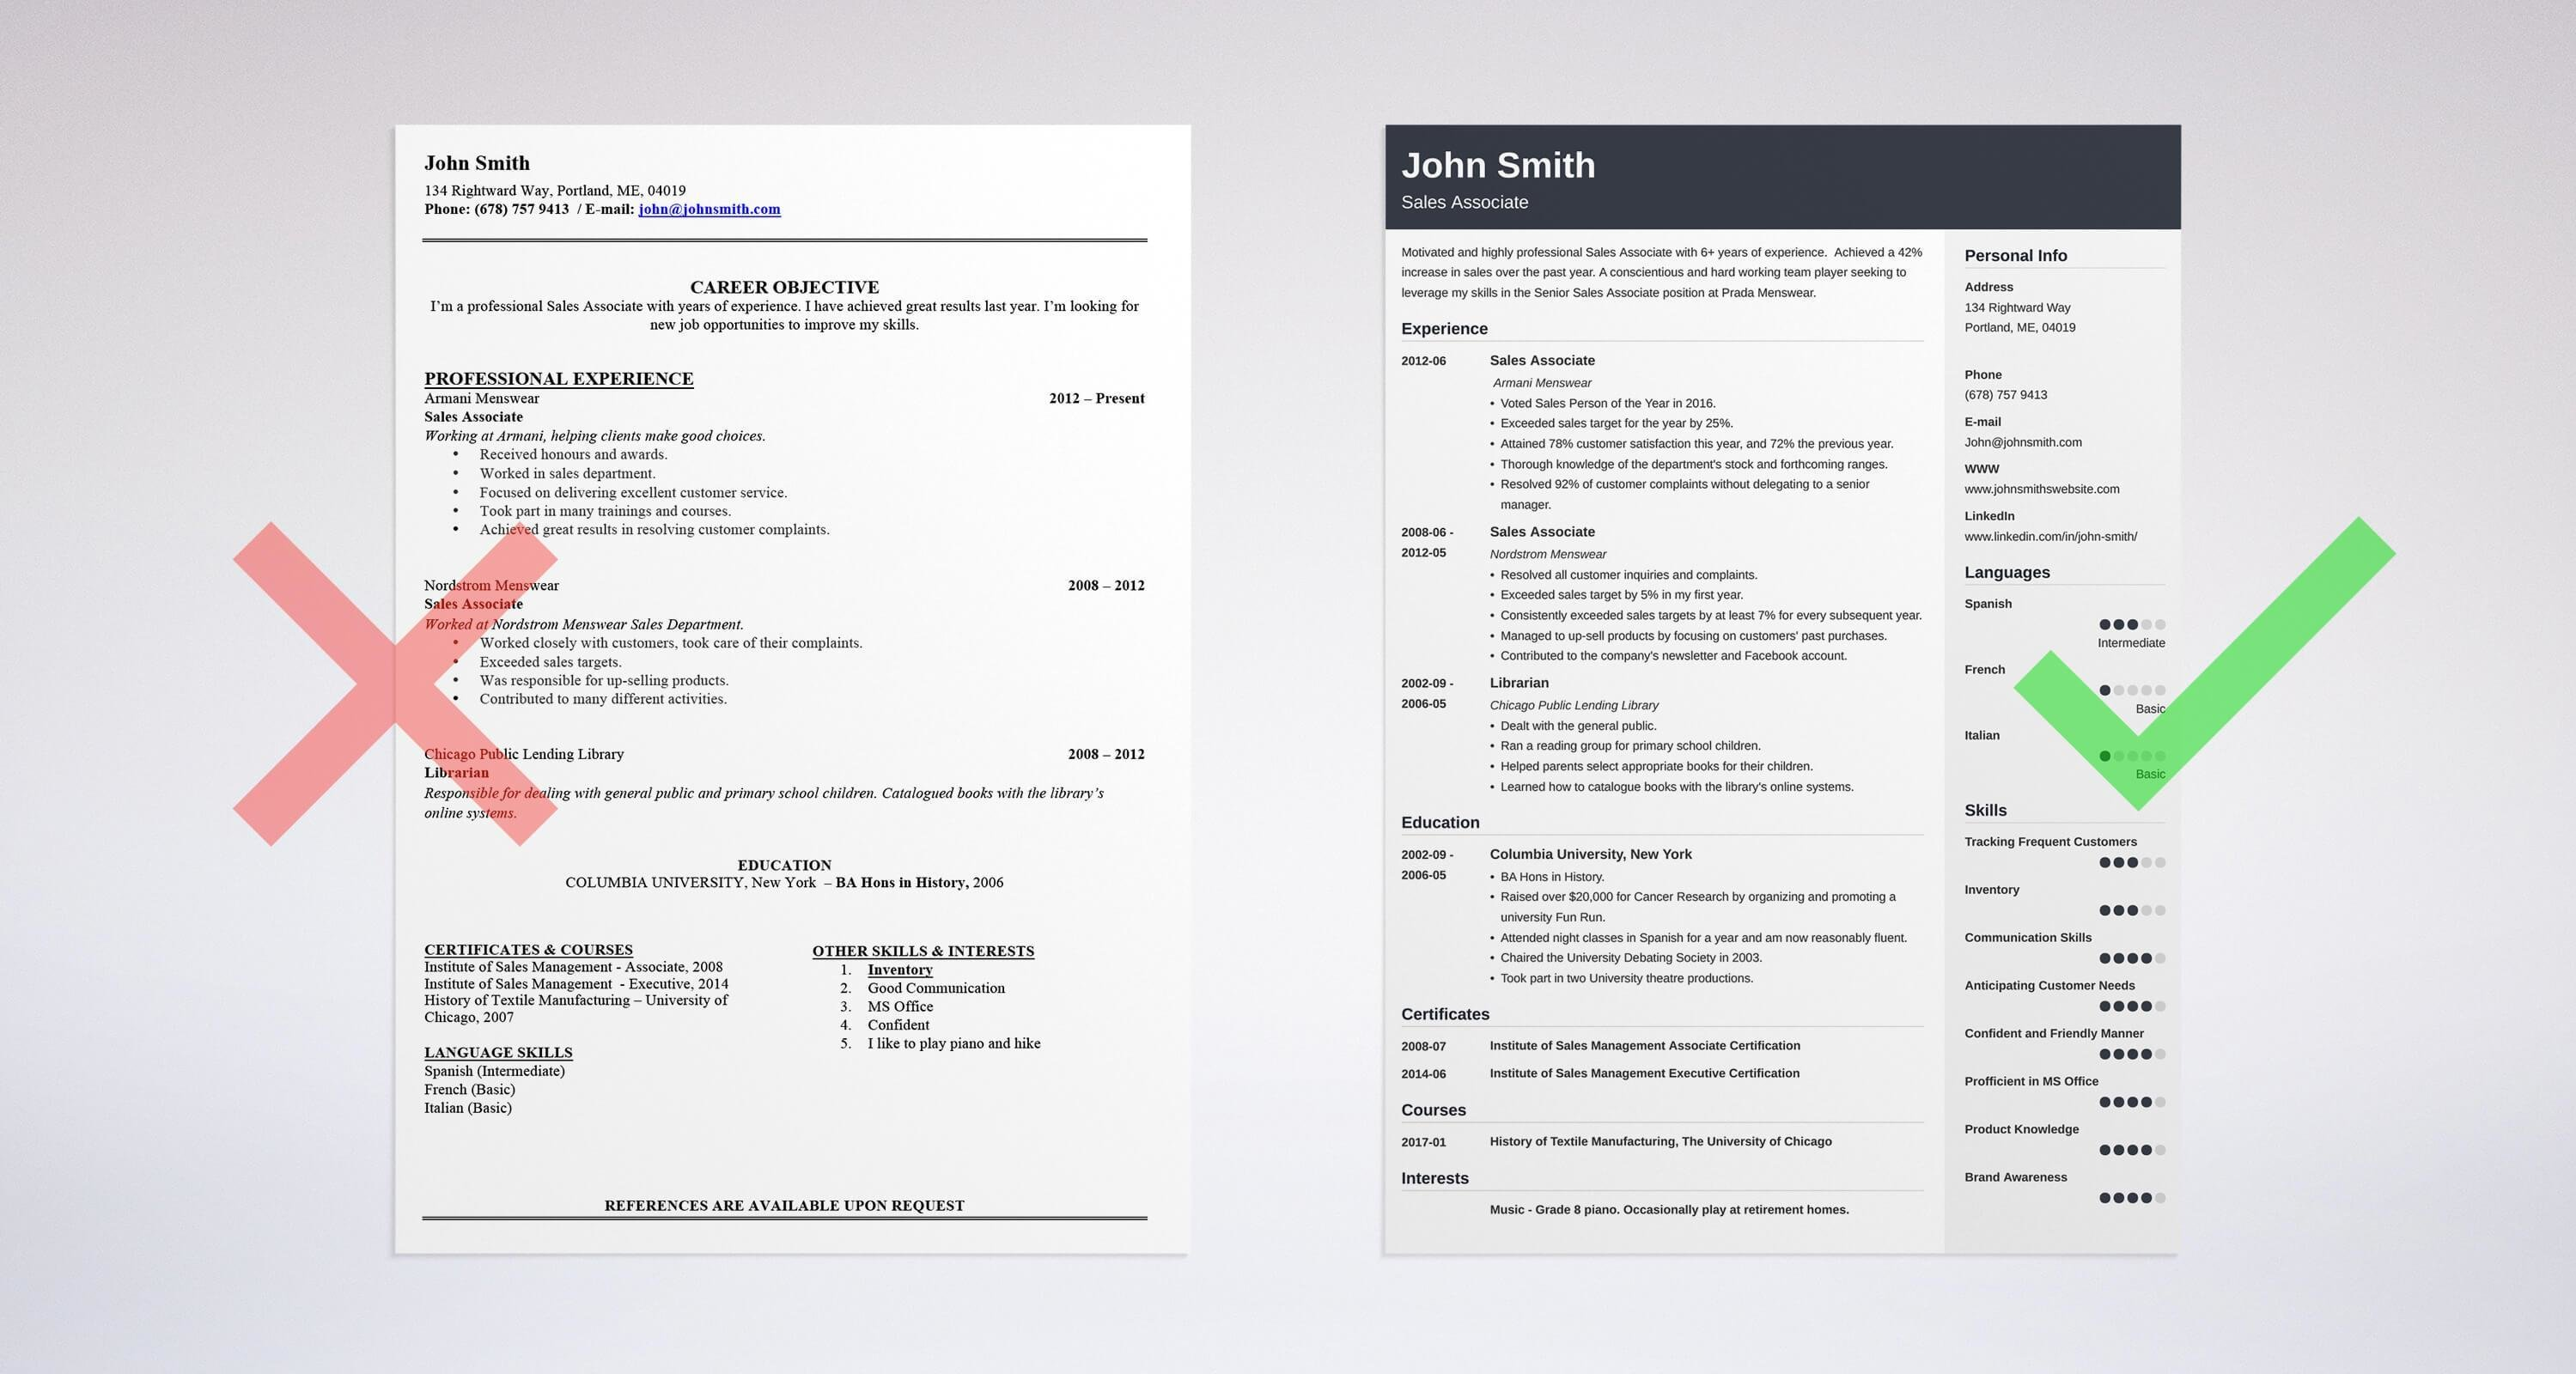 Professional Resume With A Career Summary  What Should A Professional Resume Look Like